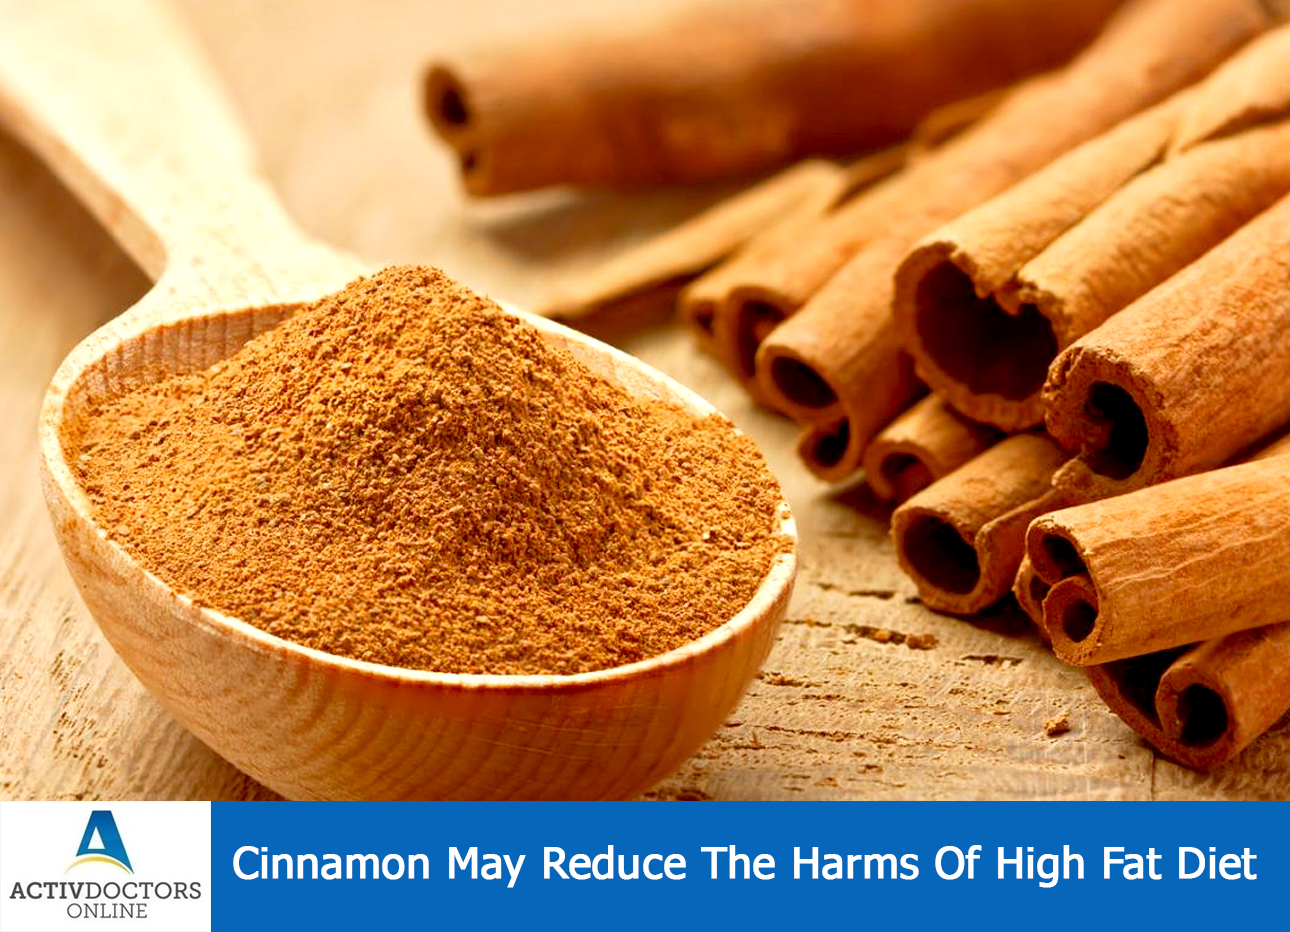 Cinnamon May Reduce The Harms Of High Fat Diet